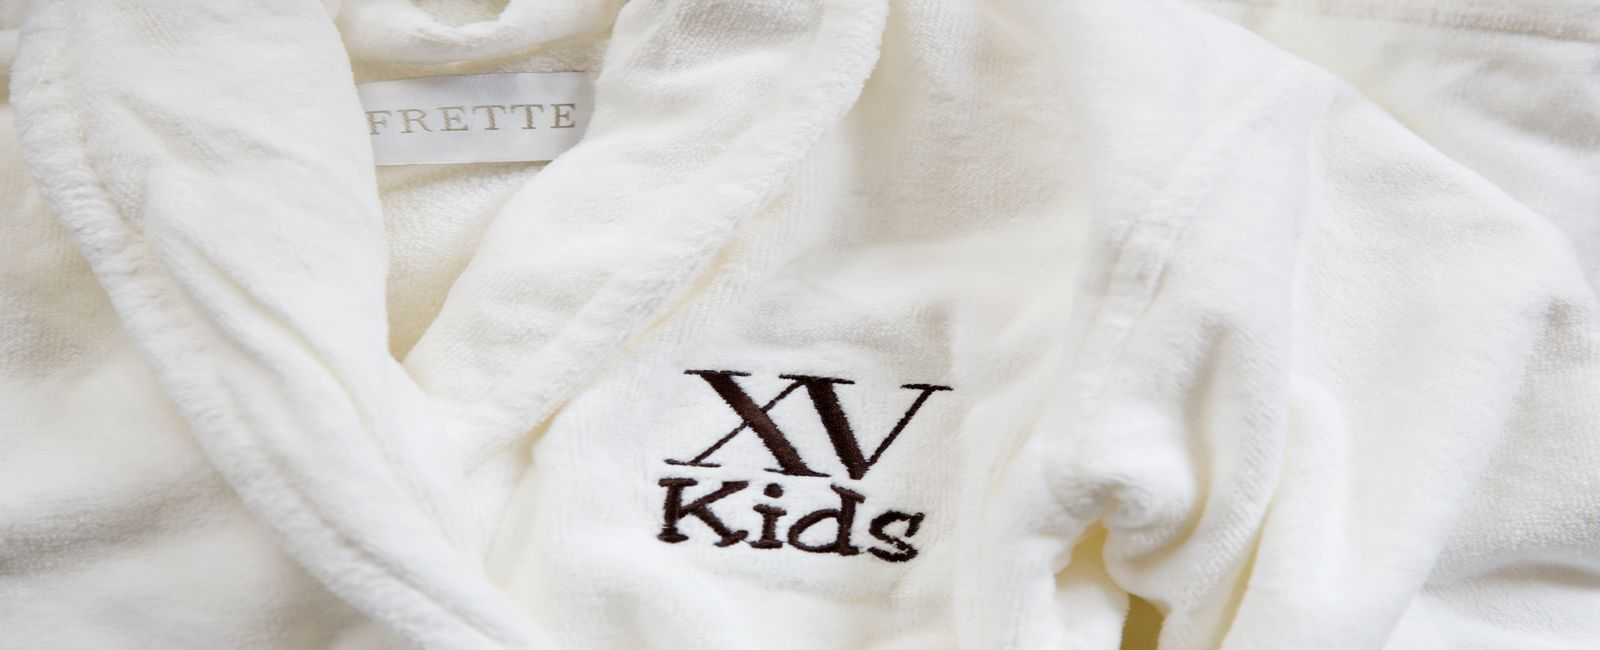 customized frette bathrobes for kids